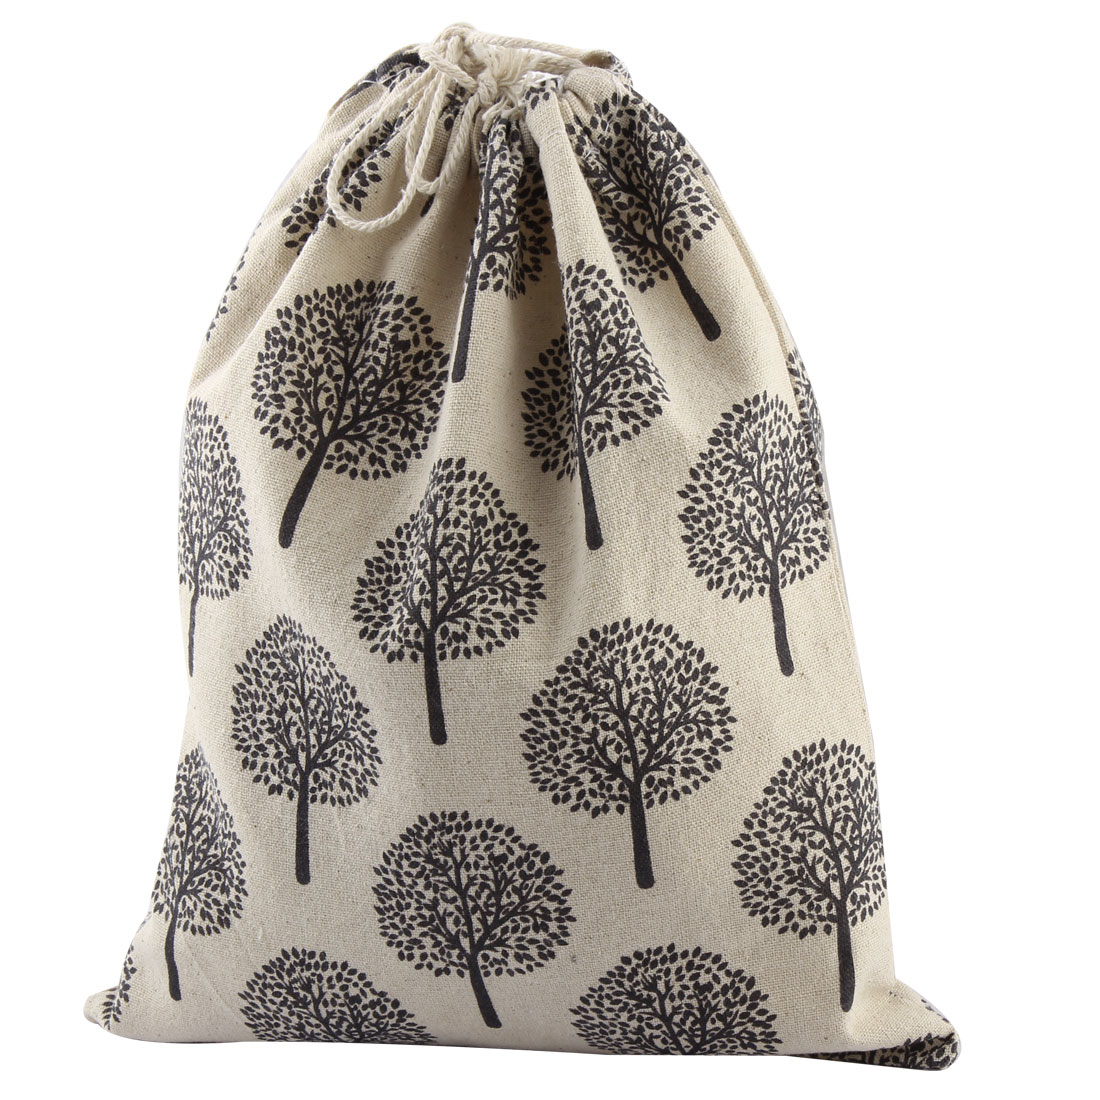 Household Cotton Cloth Tree Pattern Storage Bag Drawstring Pouch Beige Black